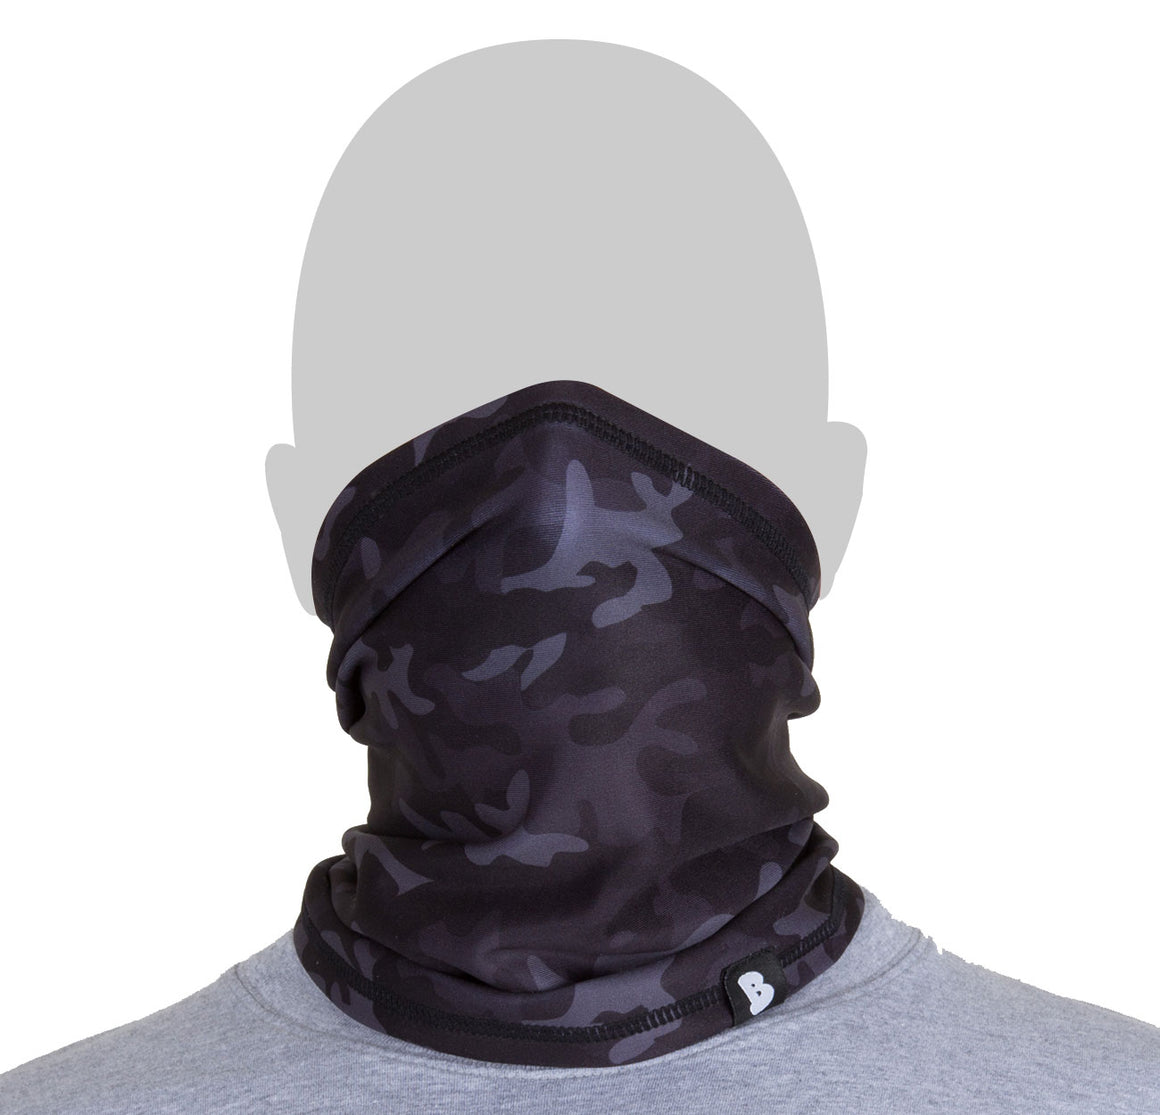 HALF FACE MASK - ARMY BLACK